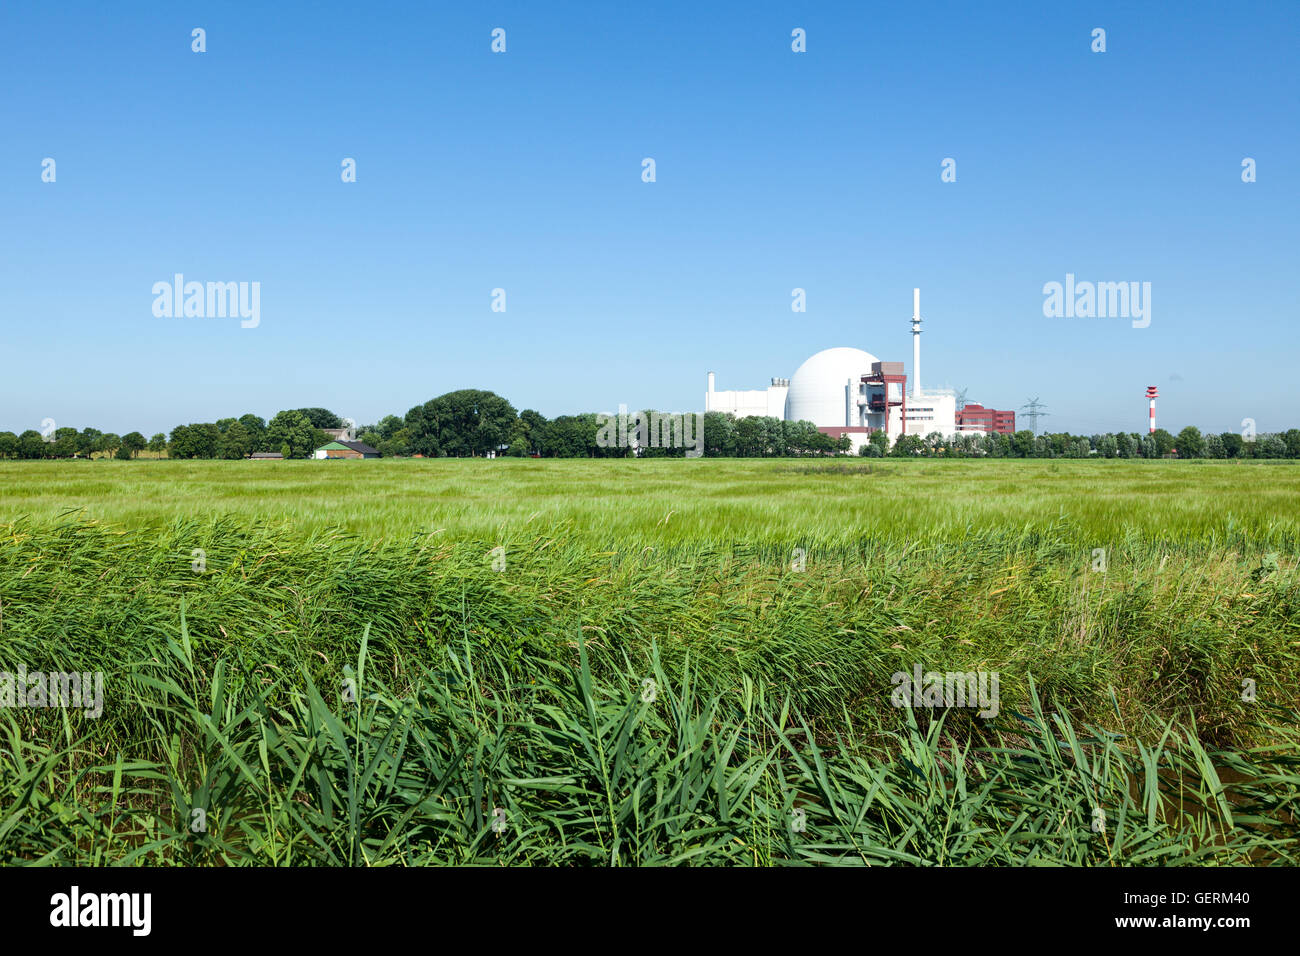 Brokdorf, Germany - July 20, 2016: Nuclear Power plant at Brokdorf, erected in 1986, today operated by E.ON - Stock Image